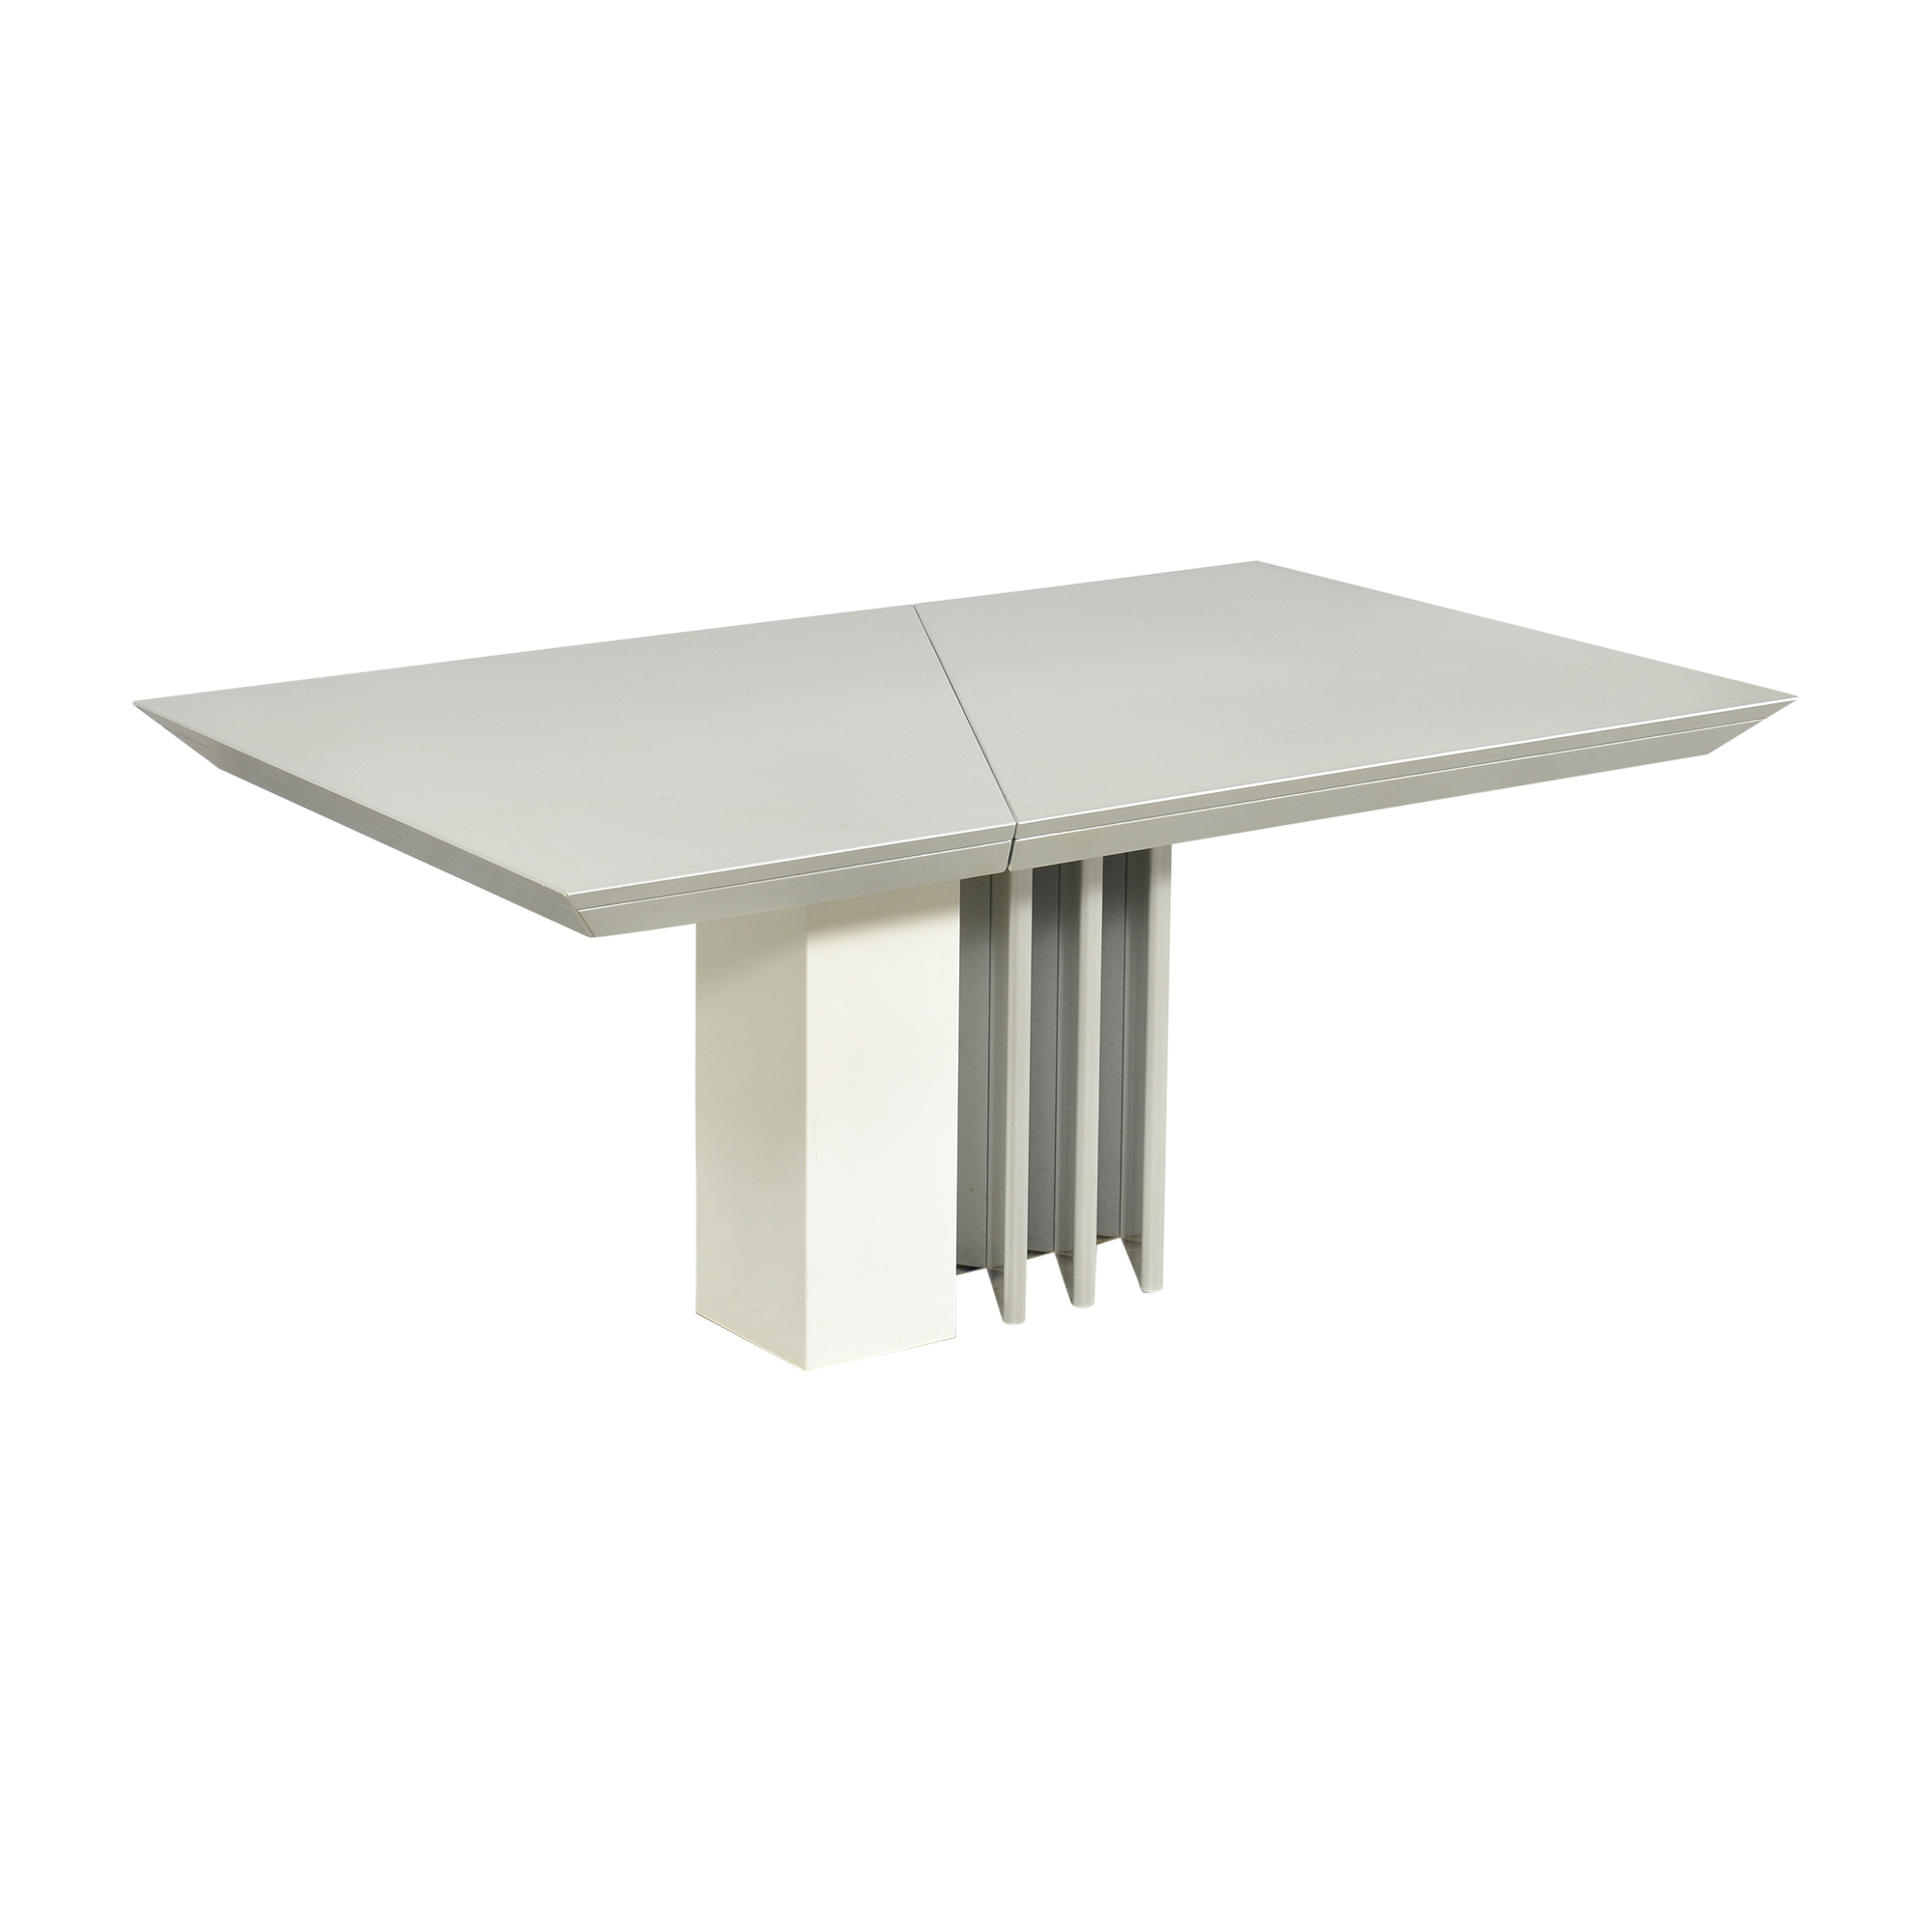 Rougier Rougier Modern Extendable Dining Table pa